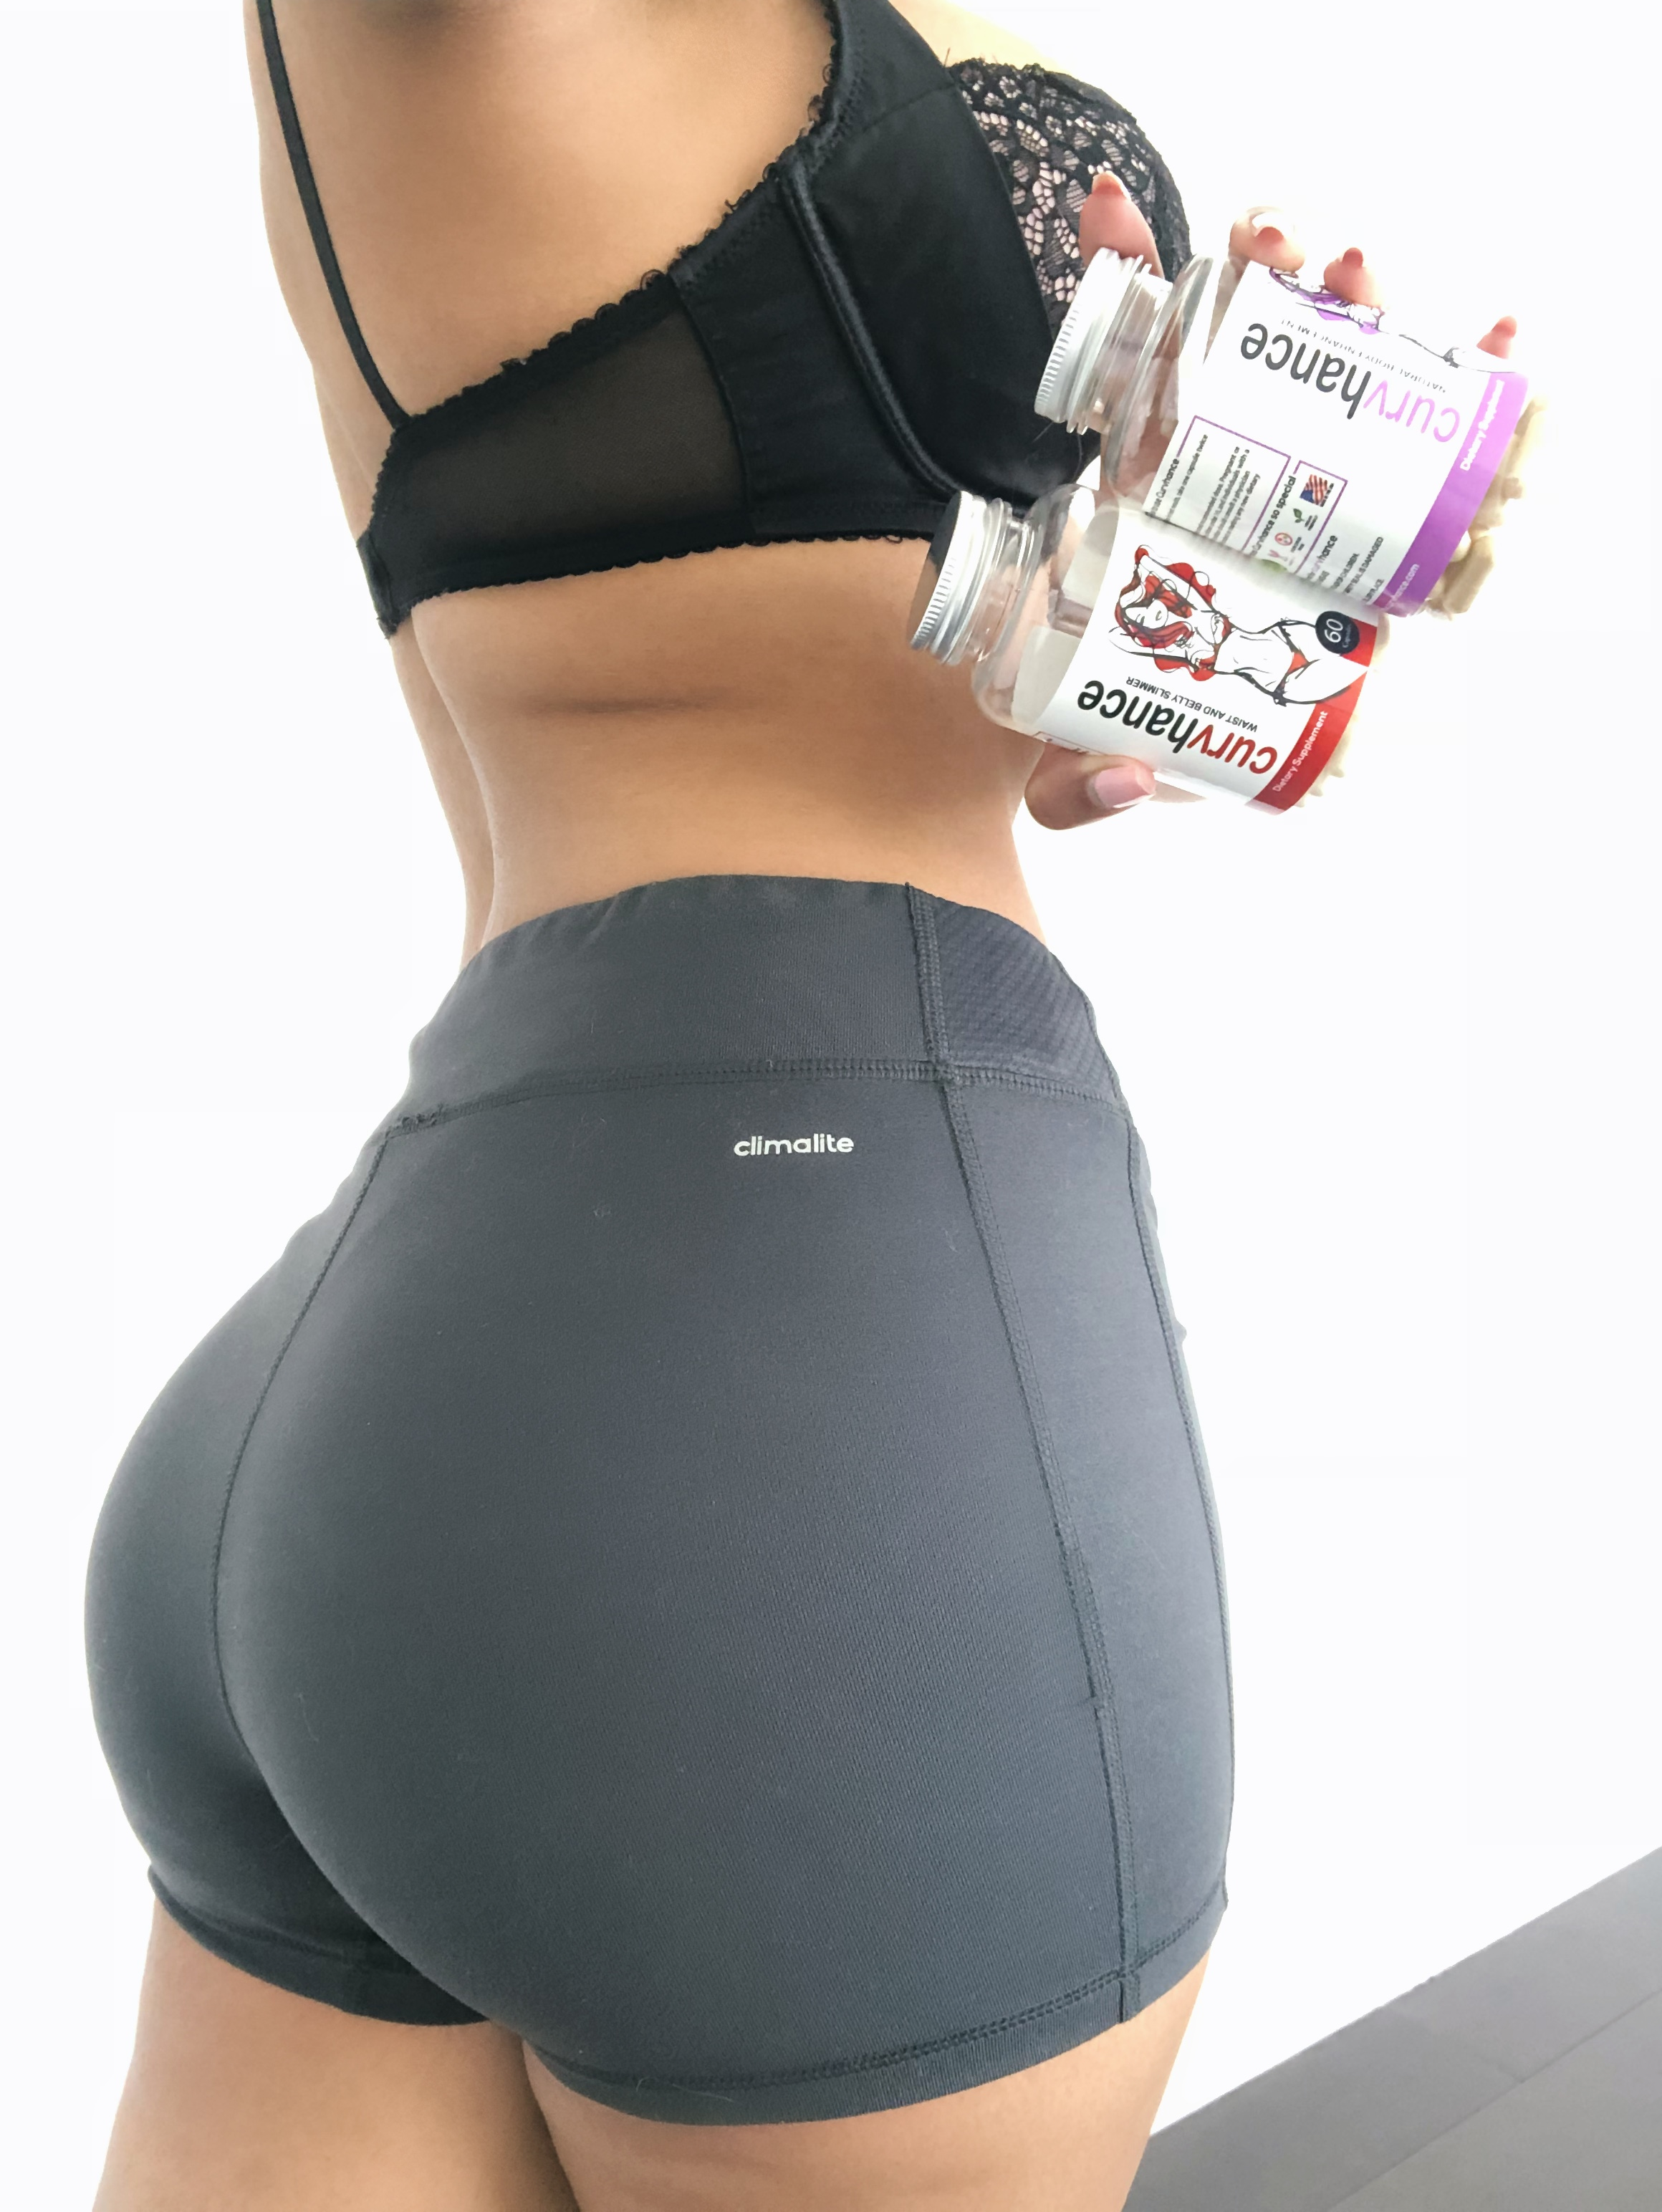 thick booty enhancement pills reviews